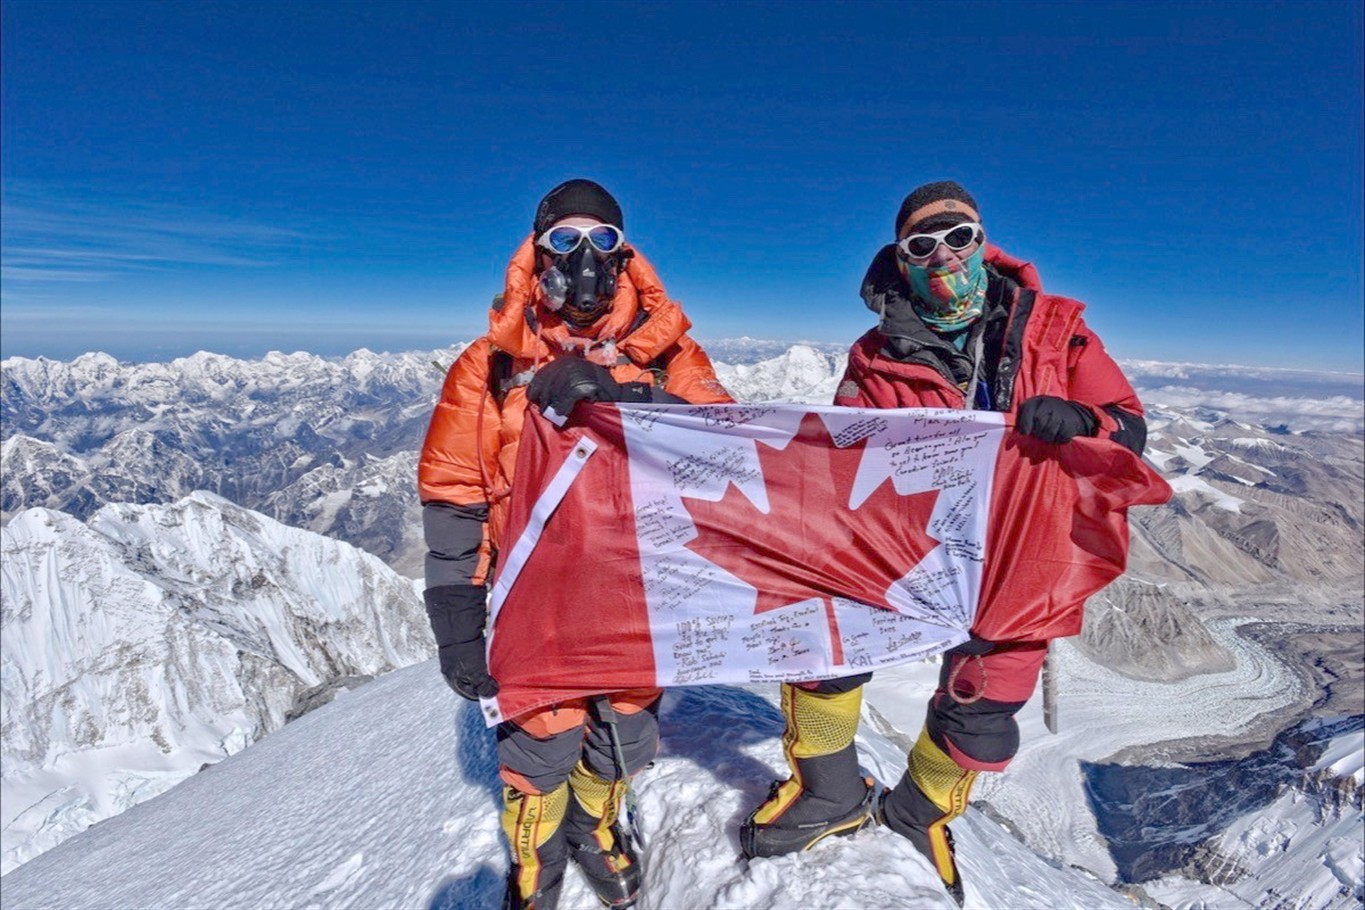 Former Alberta politician one of the oldest Canadians to summit